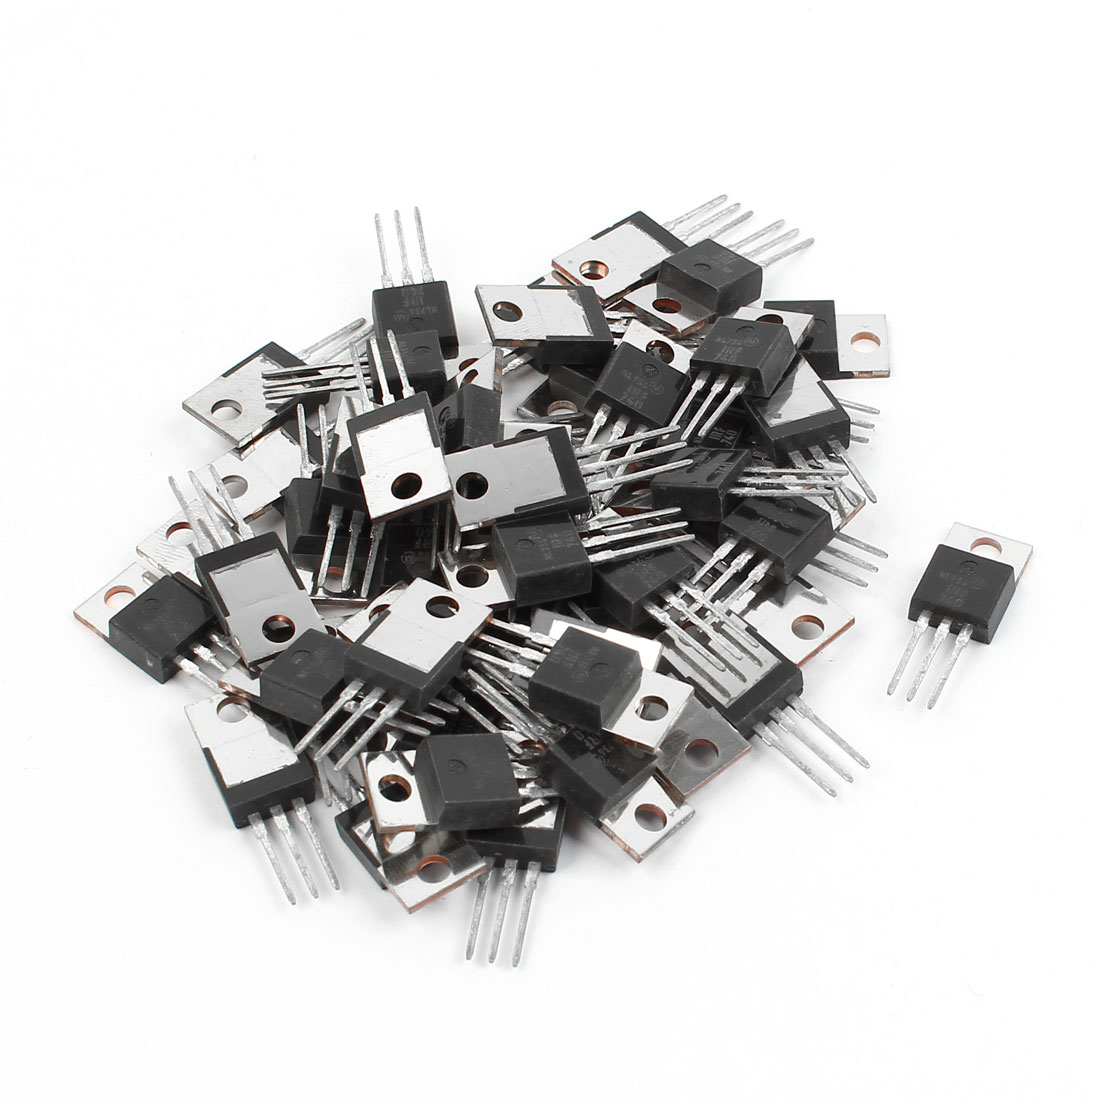 50 Pcs IRF740 TO-220 N-Channel Power MOSFET 400V 10A